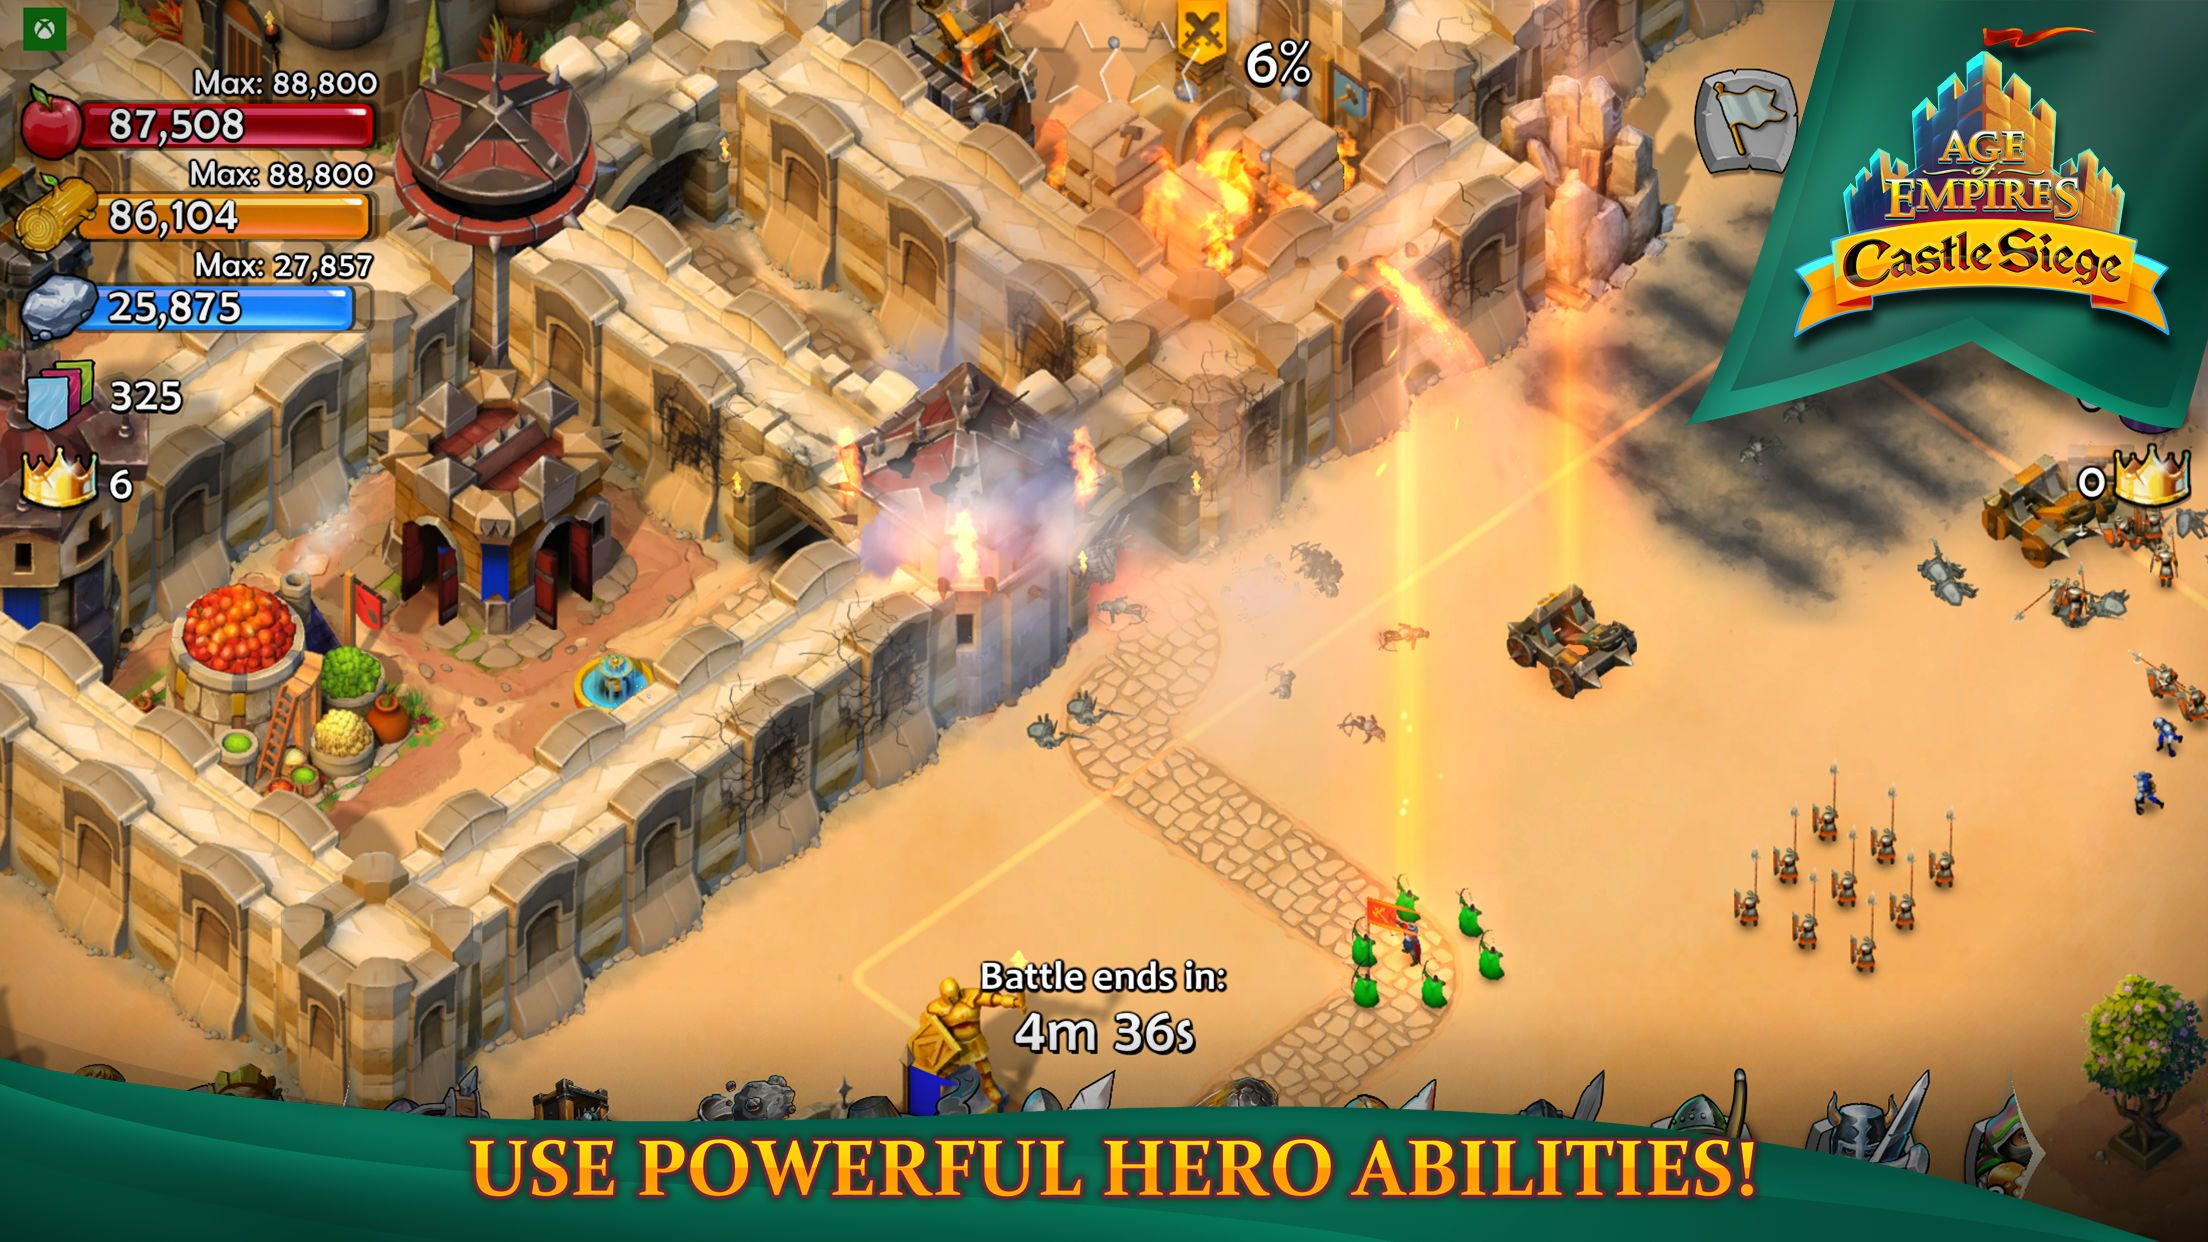 Age Of Empires Castle Siege Hack Amazing Cheats Gold Food